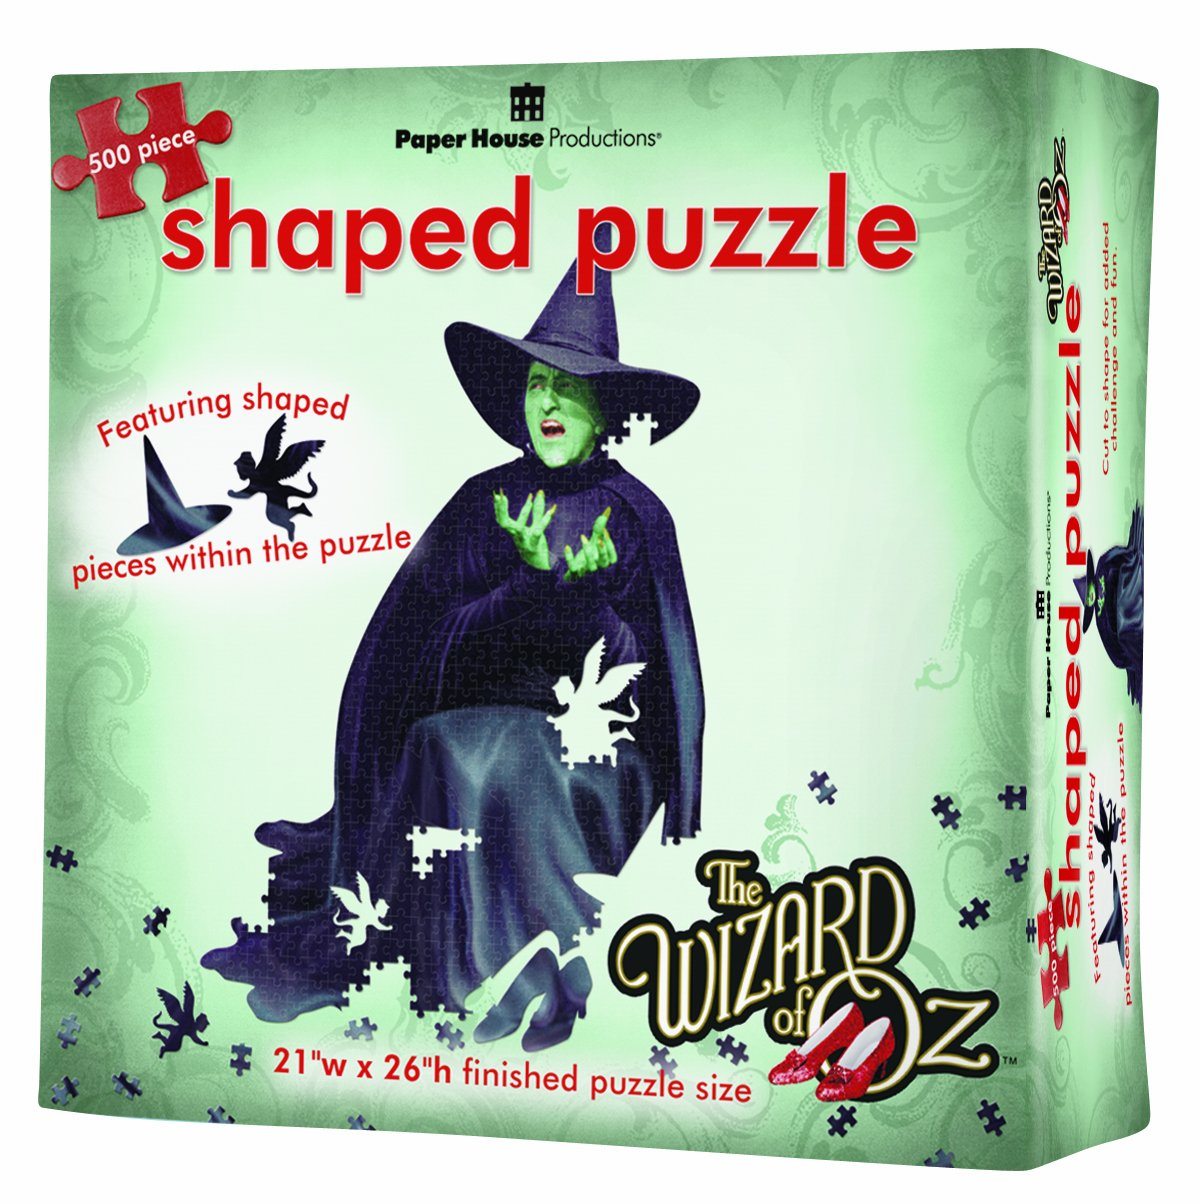 Paper House Productions Jigsaw Shaped Puzzle 21 by 26-Inch, The Wizard of Oz - Wicked Witch (500 Pieces)